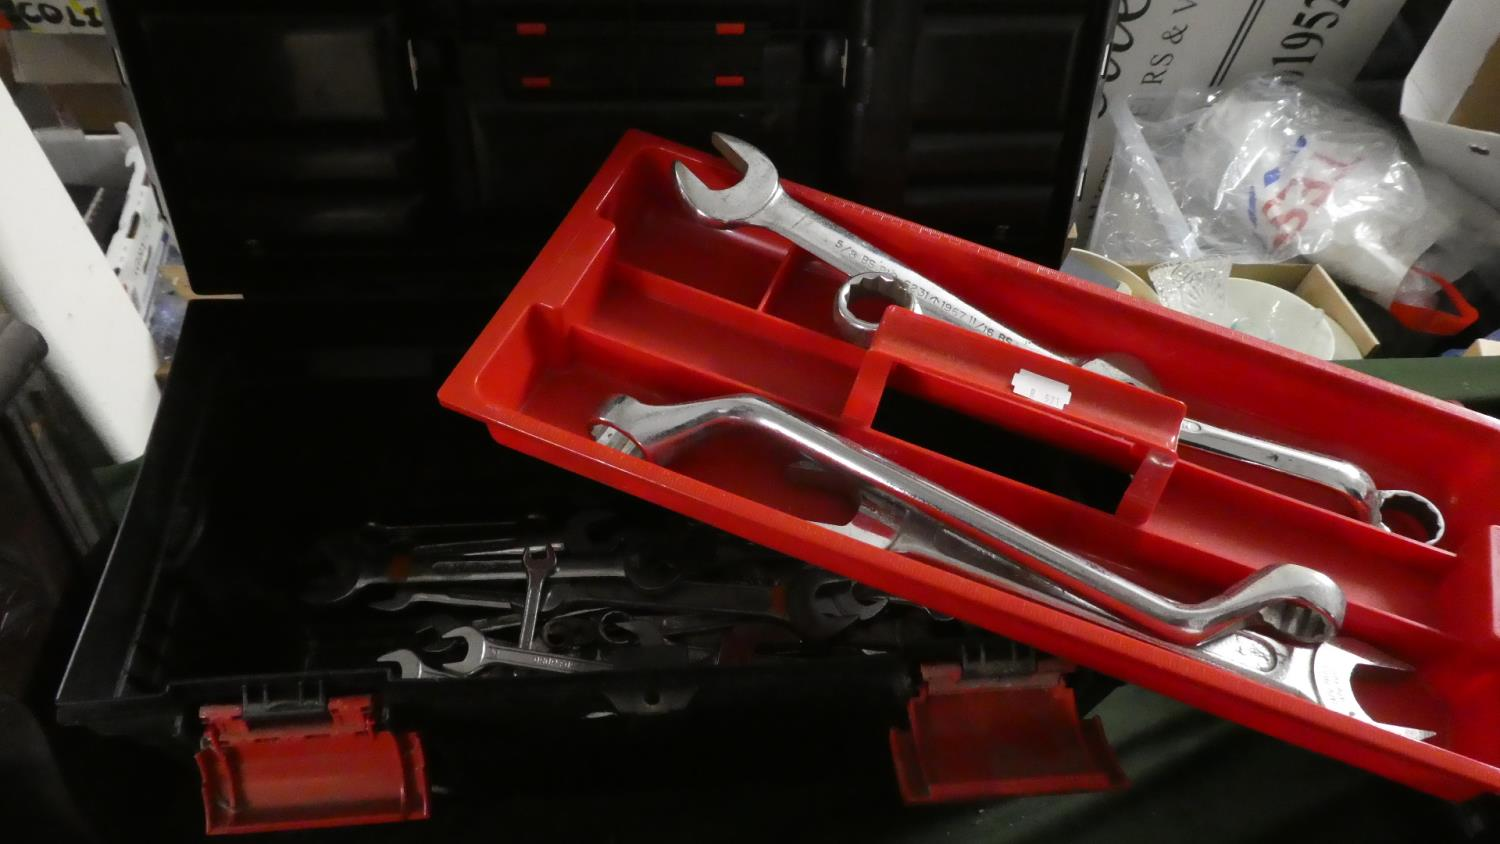 Lot 395 - A Toolbox Containing Various Ring and Open Spanners